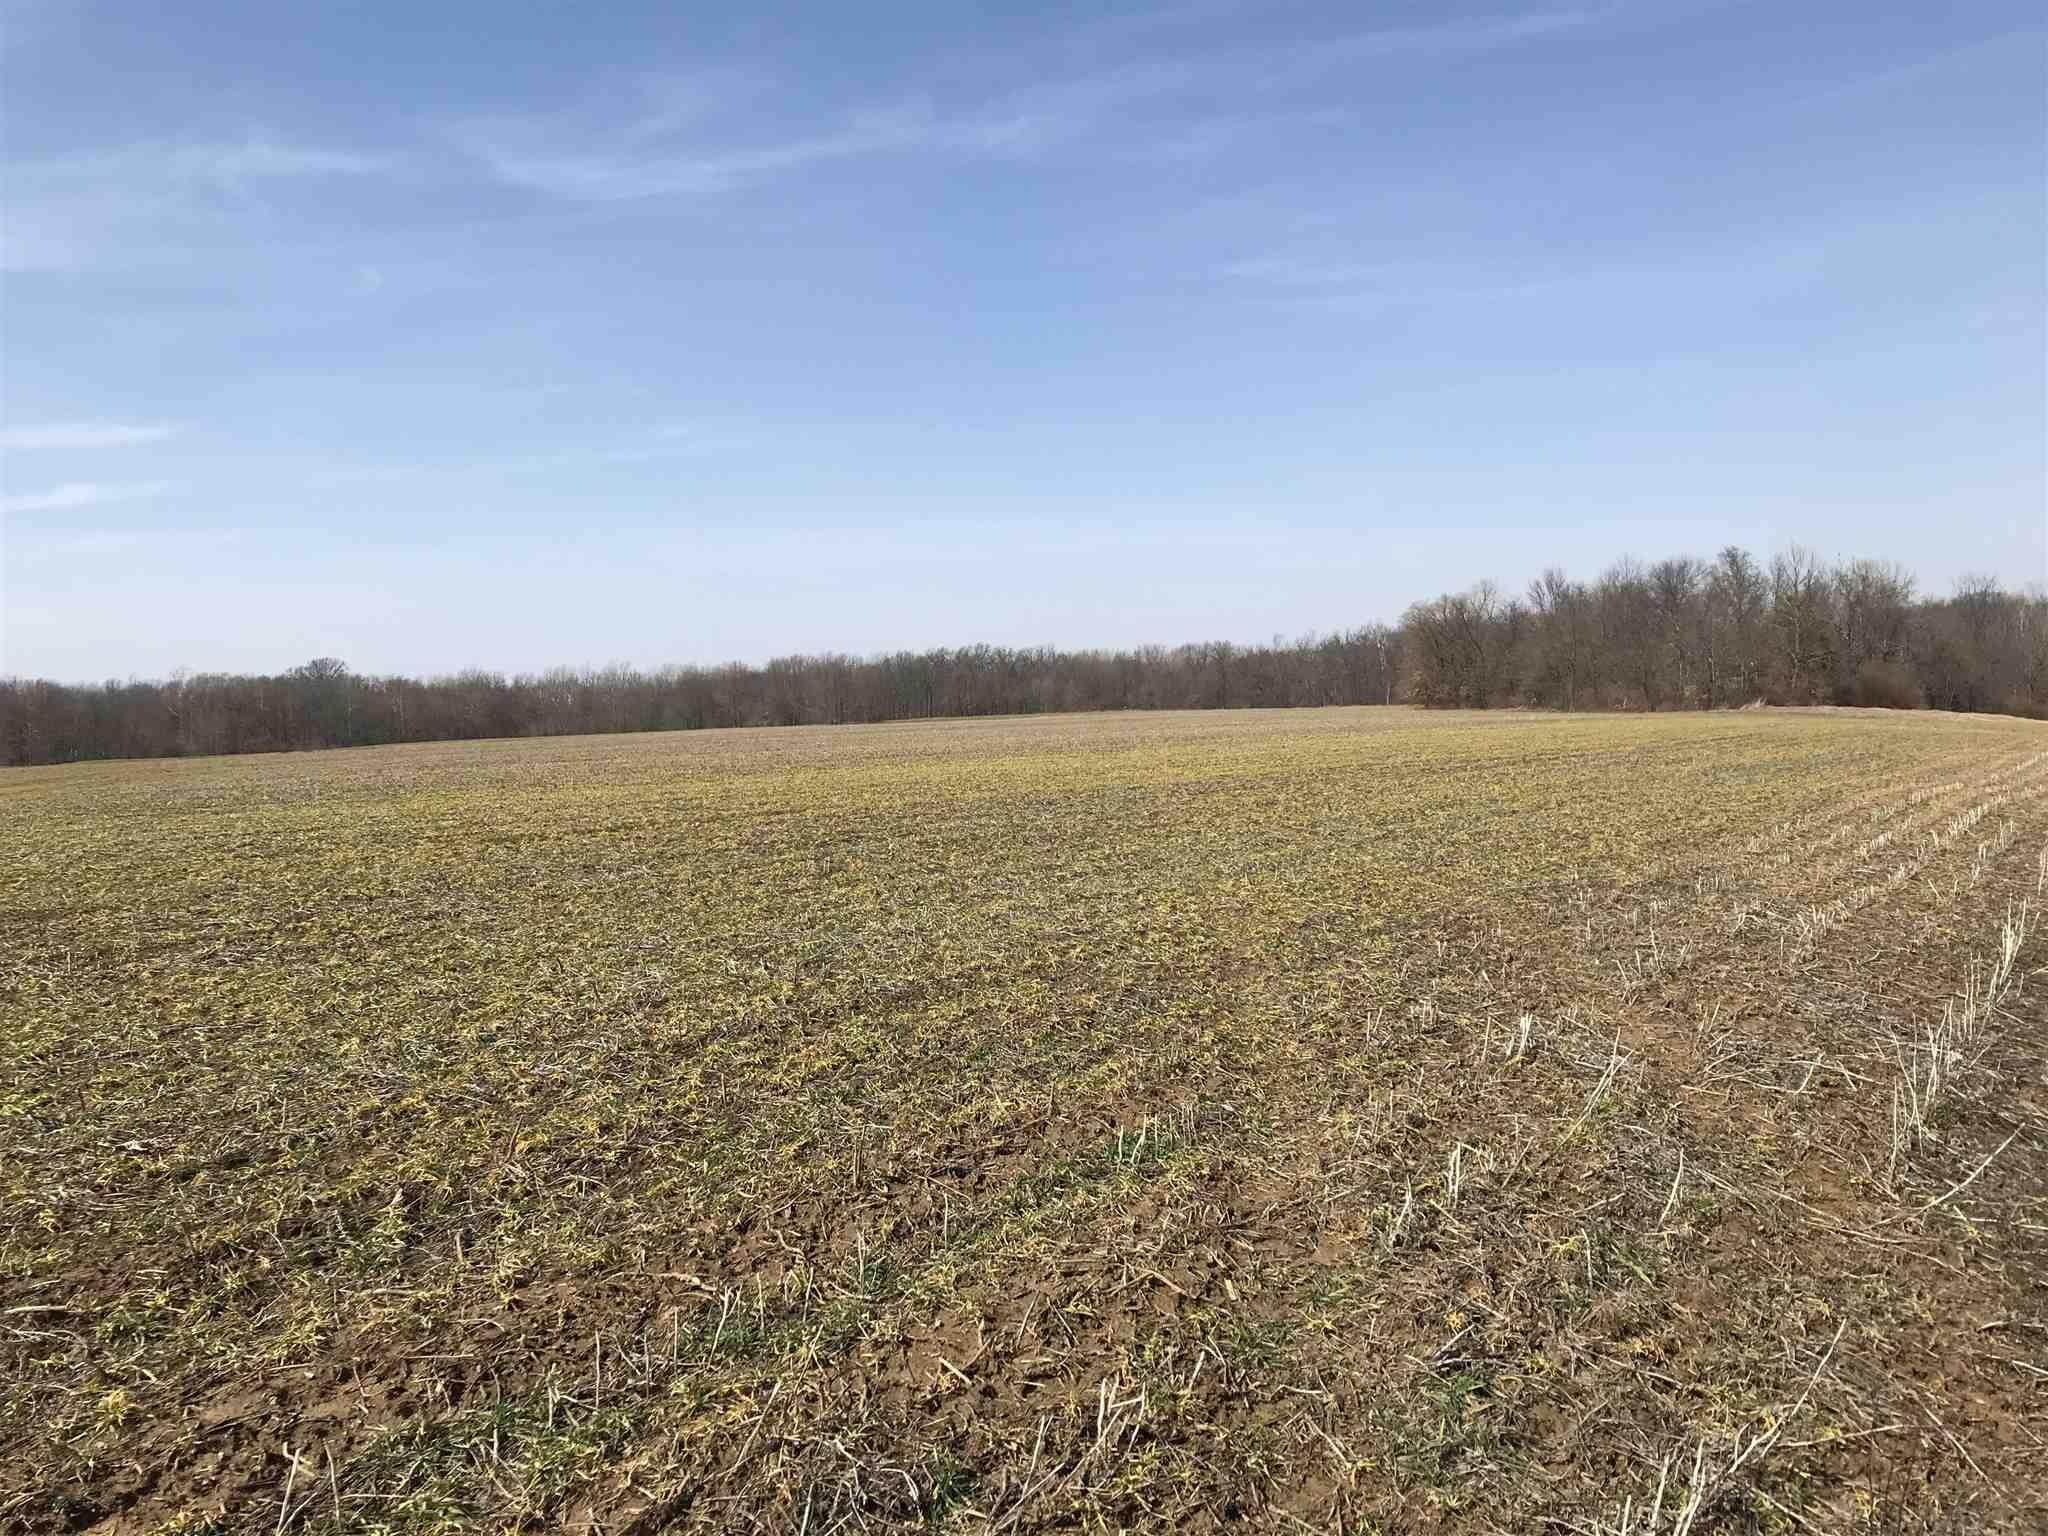 Agricultural Land for Sale at 106 Acres E CO RD 350 S Dugger, Indiana 47848 United States